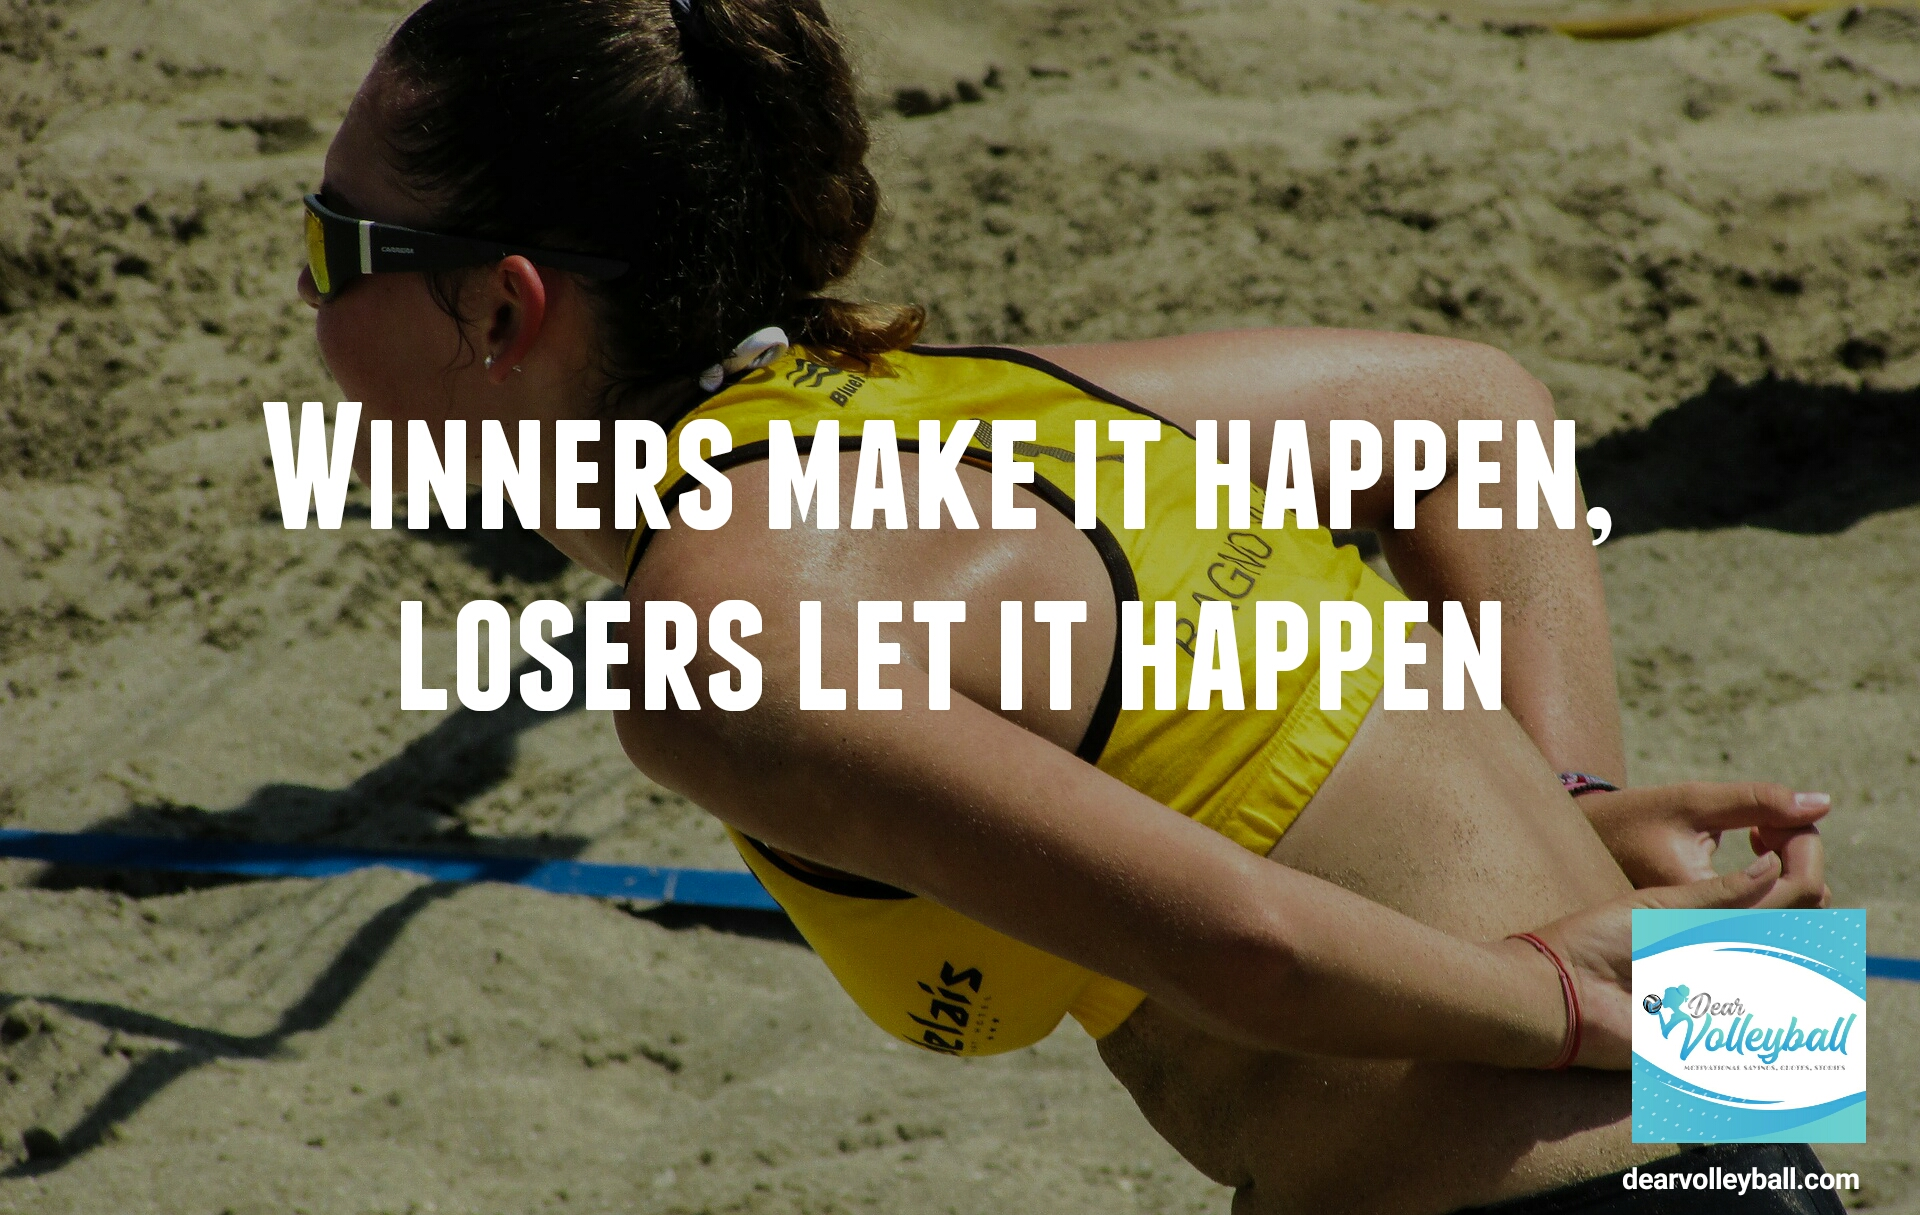 Winners make it happen losers let it happen and 54 short inspirational quotes on DearVolleyball.com